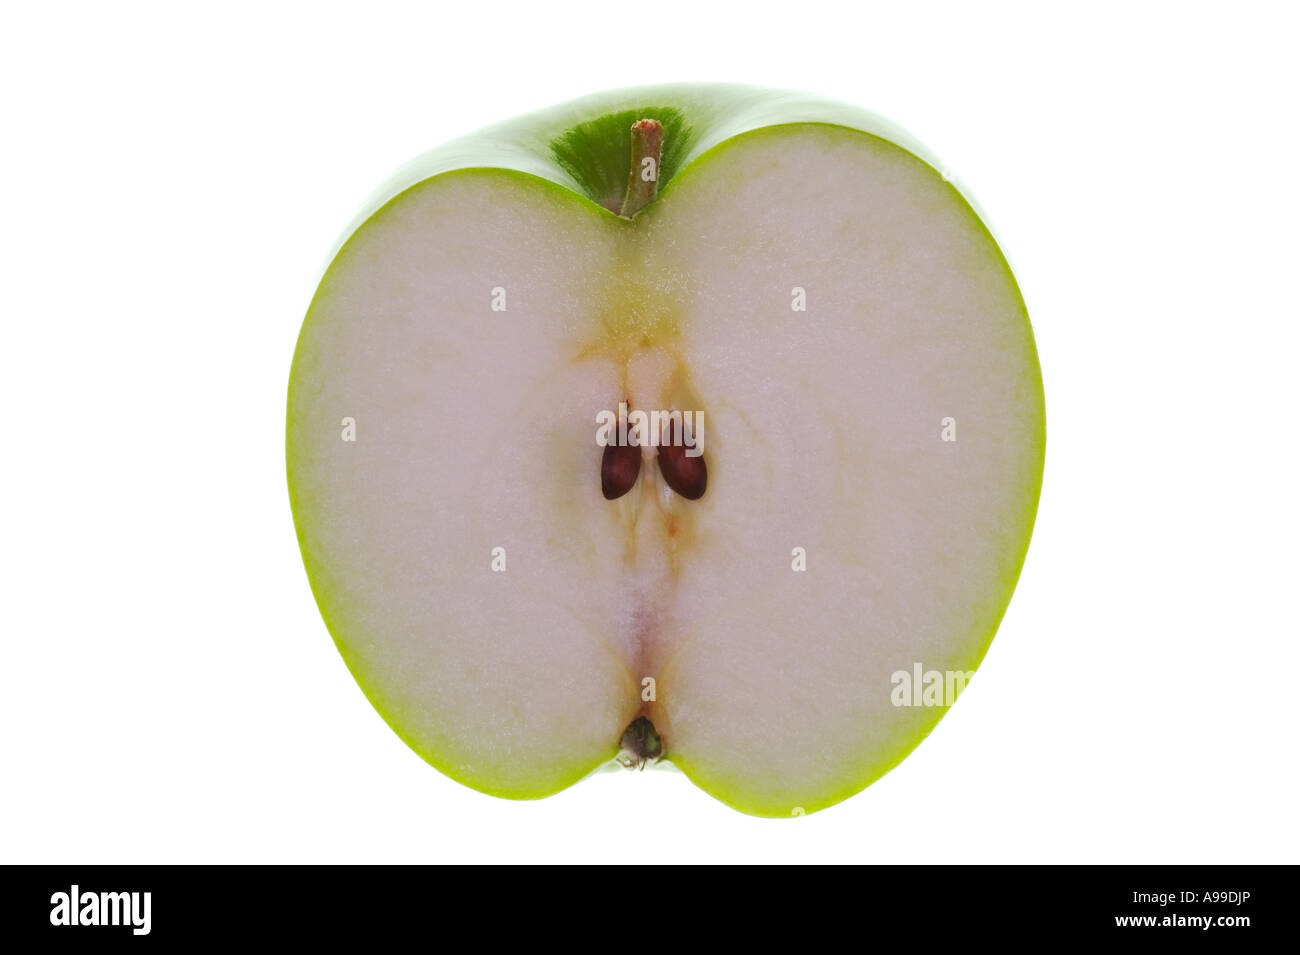 Half a green Apple Backlit and isolated on white - Stock Image